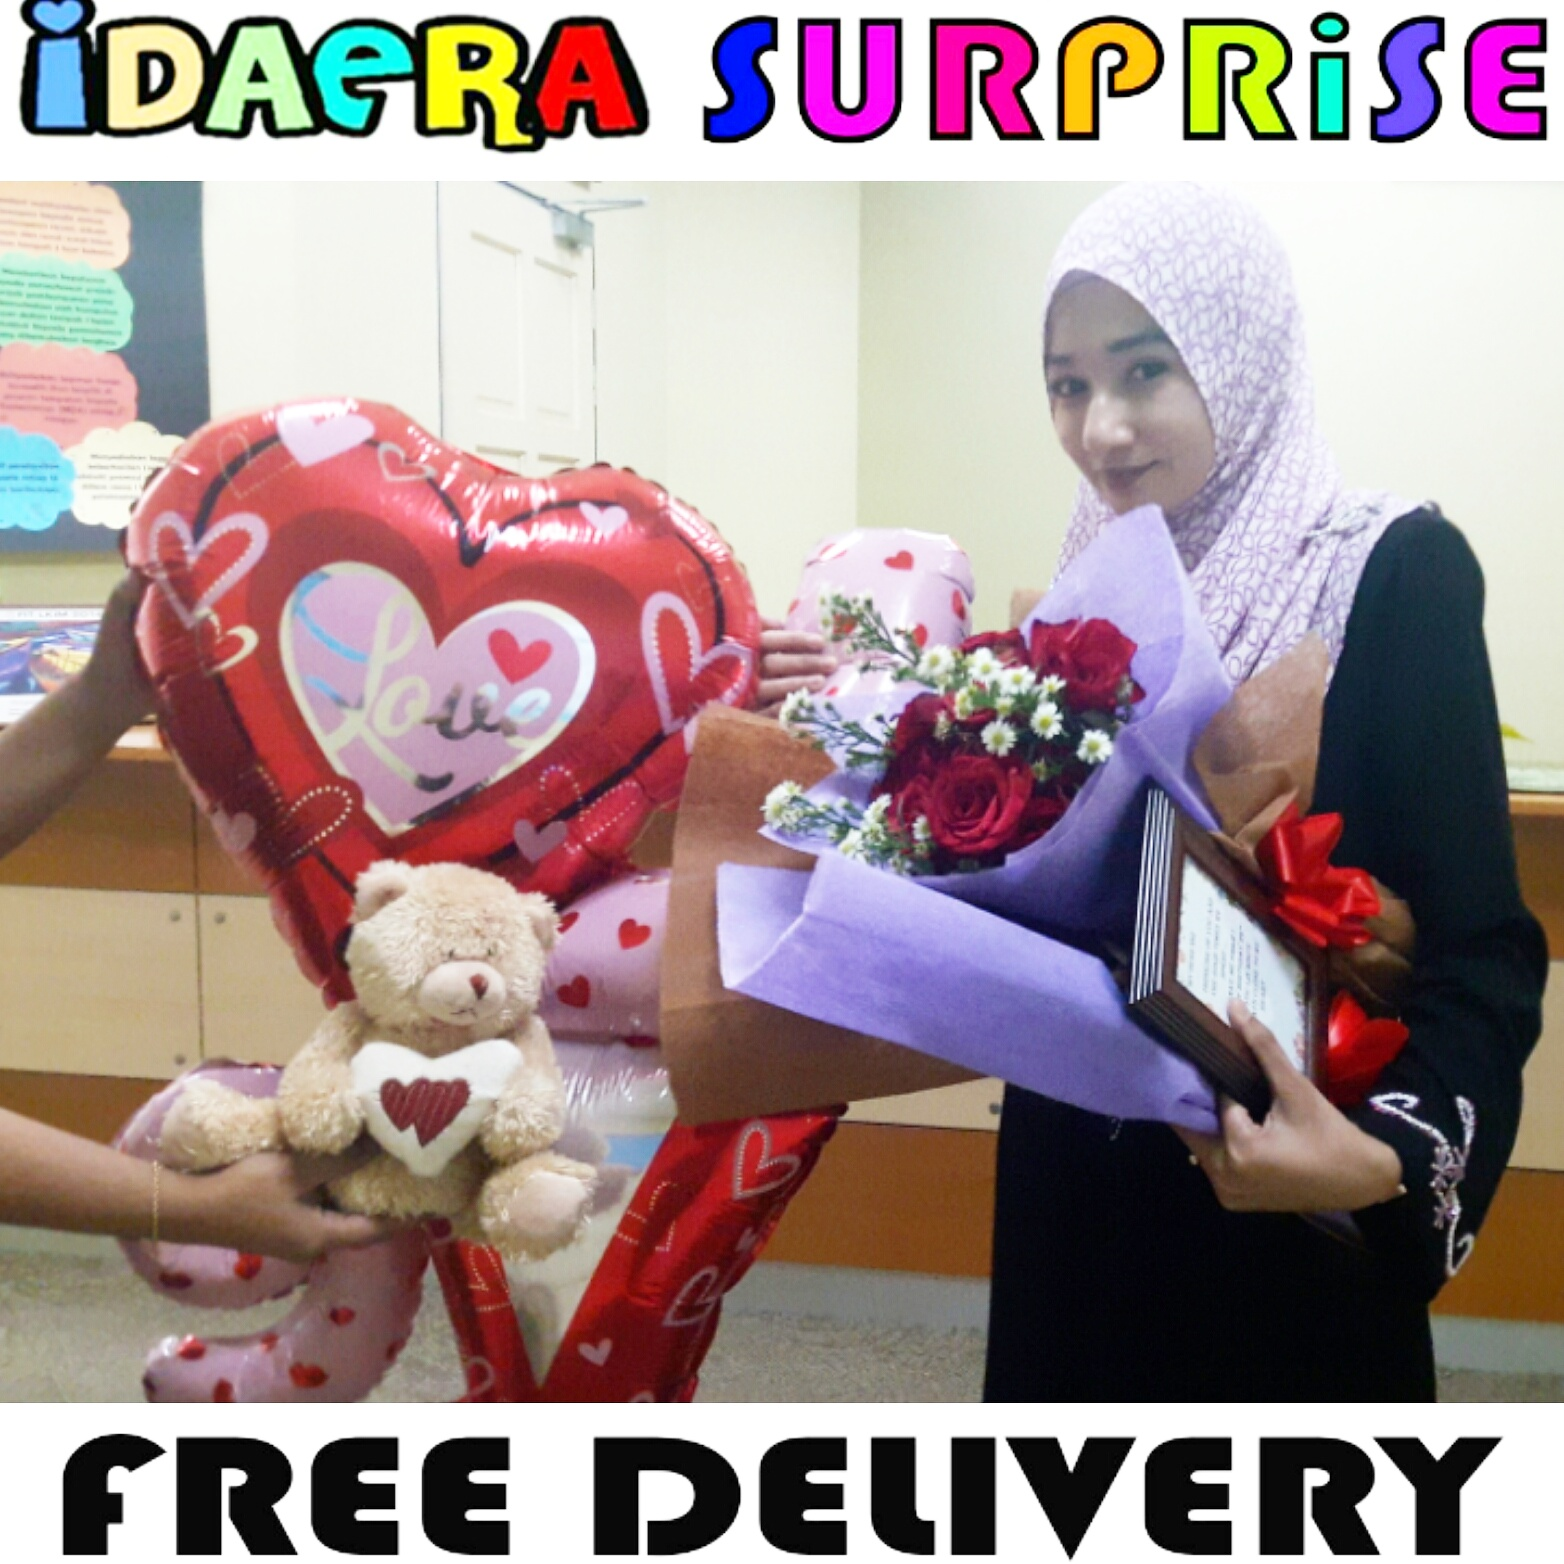 IdaEra Cupcakes & Cookies: SURPRISE BIRTHDAY DELIVERY KE